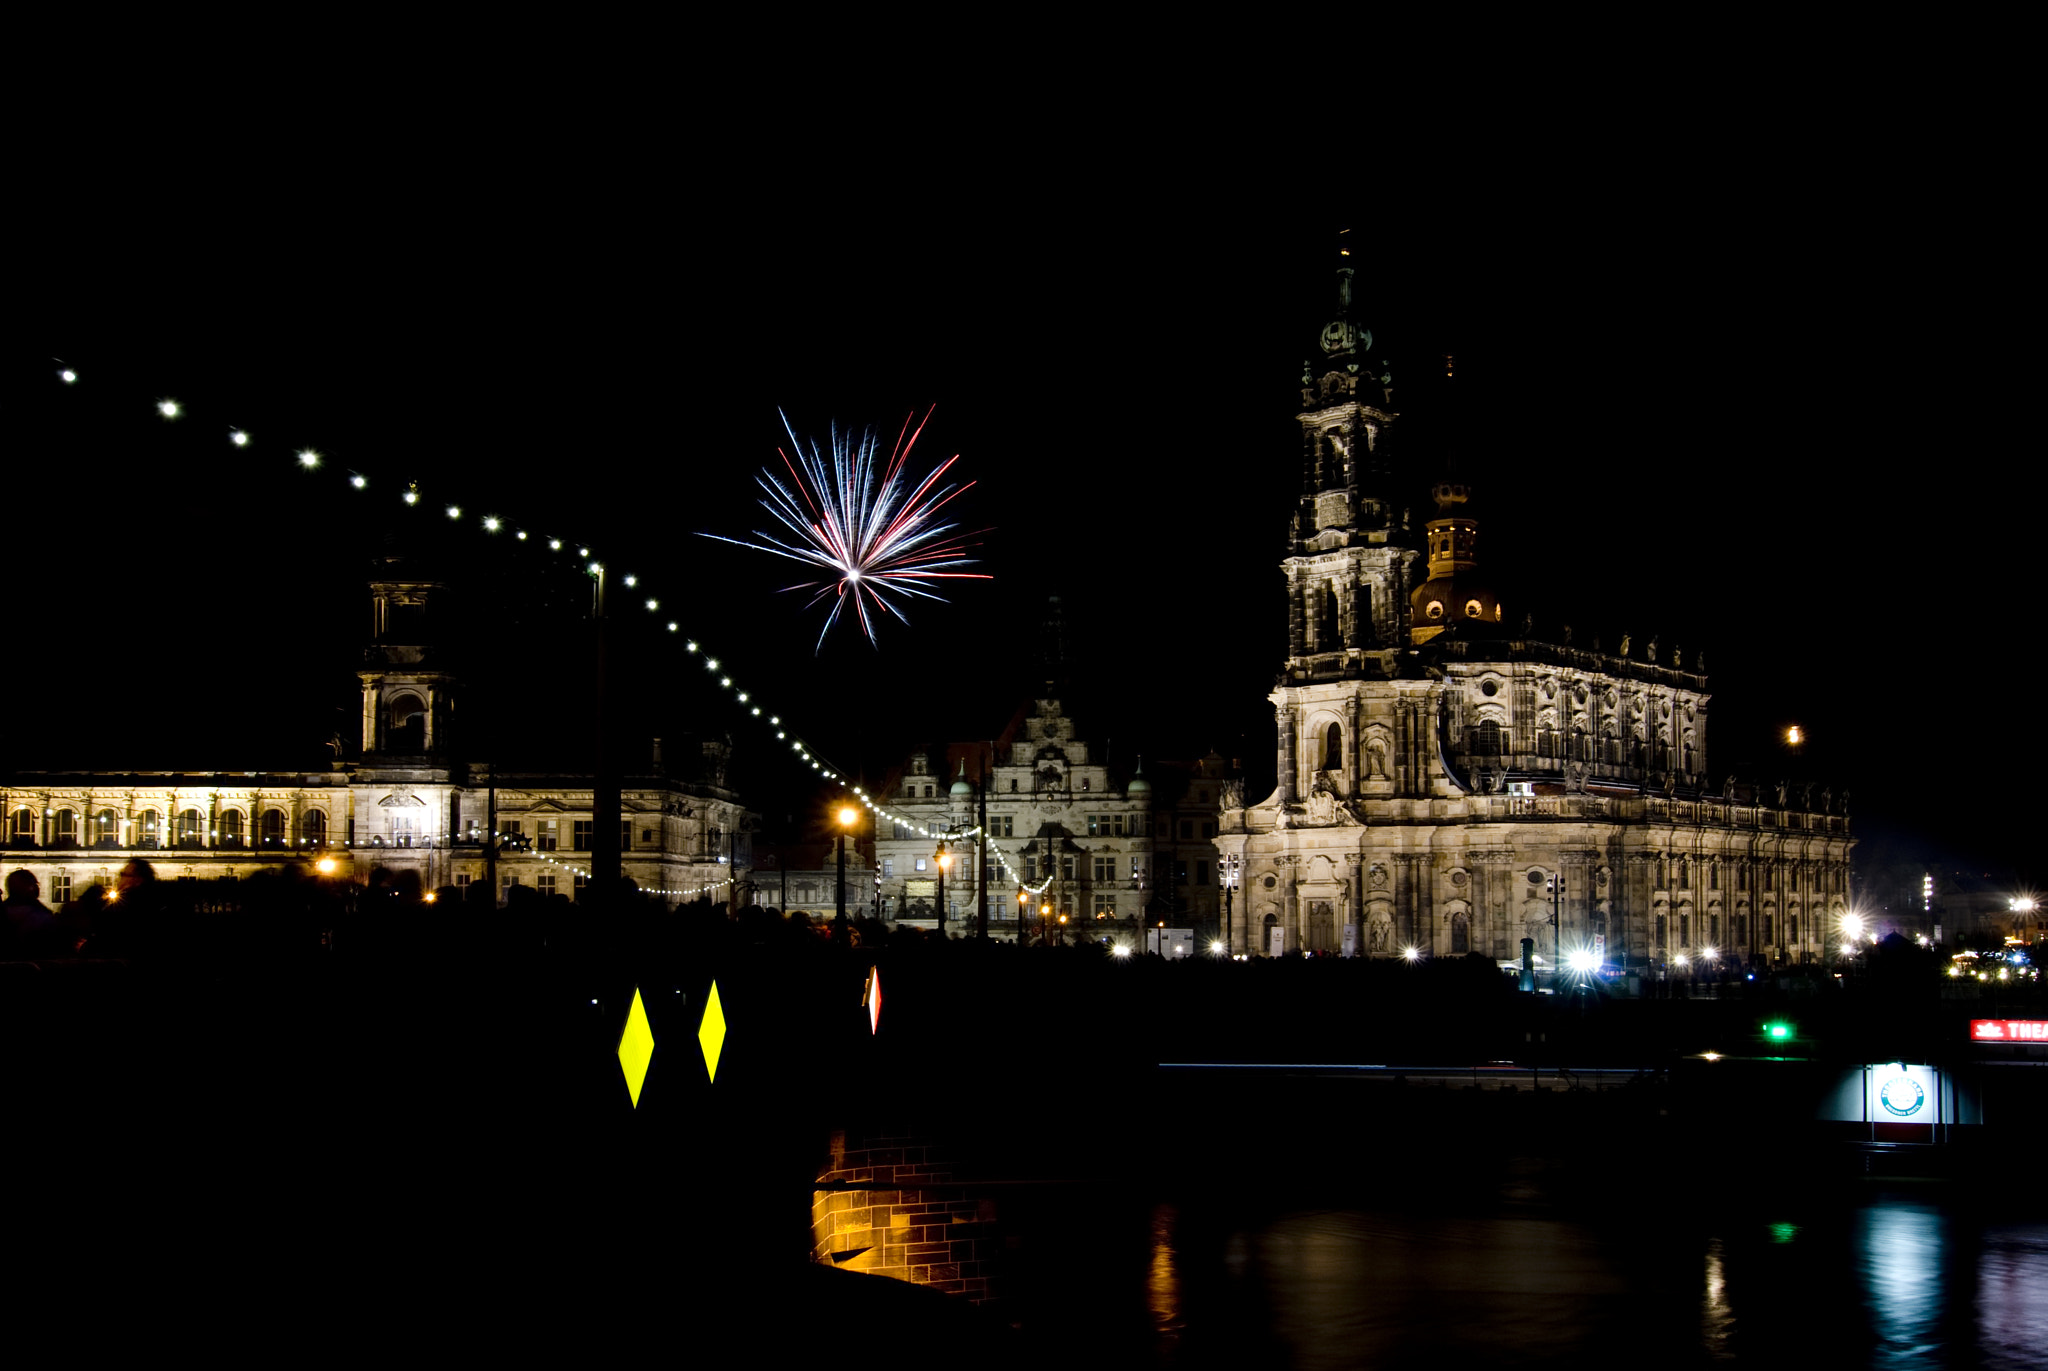 Photograph Silvester in Dresden by Alexander Männel on 500px